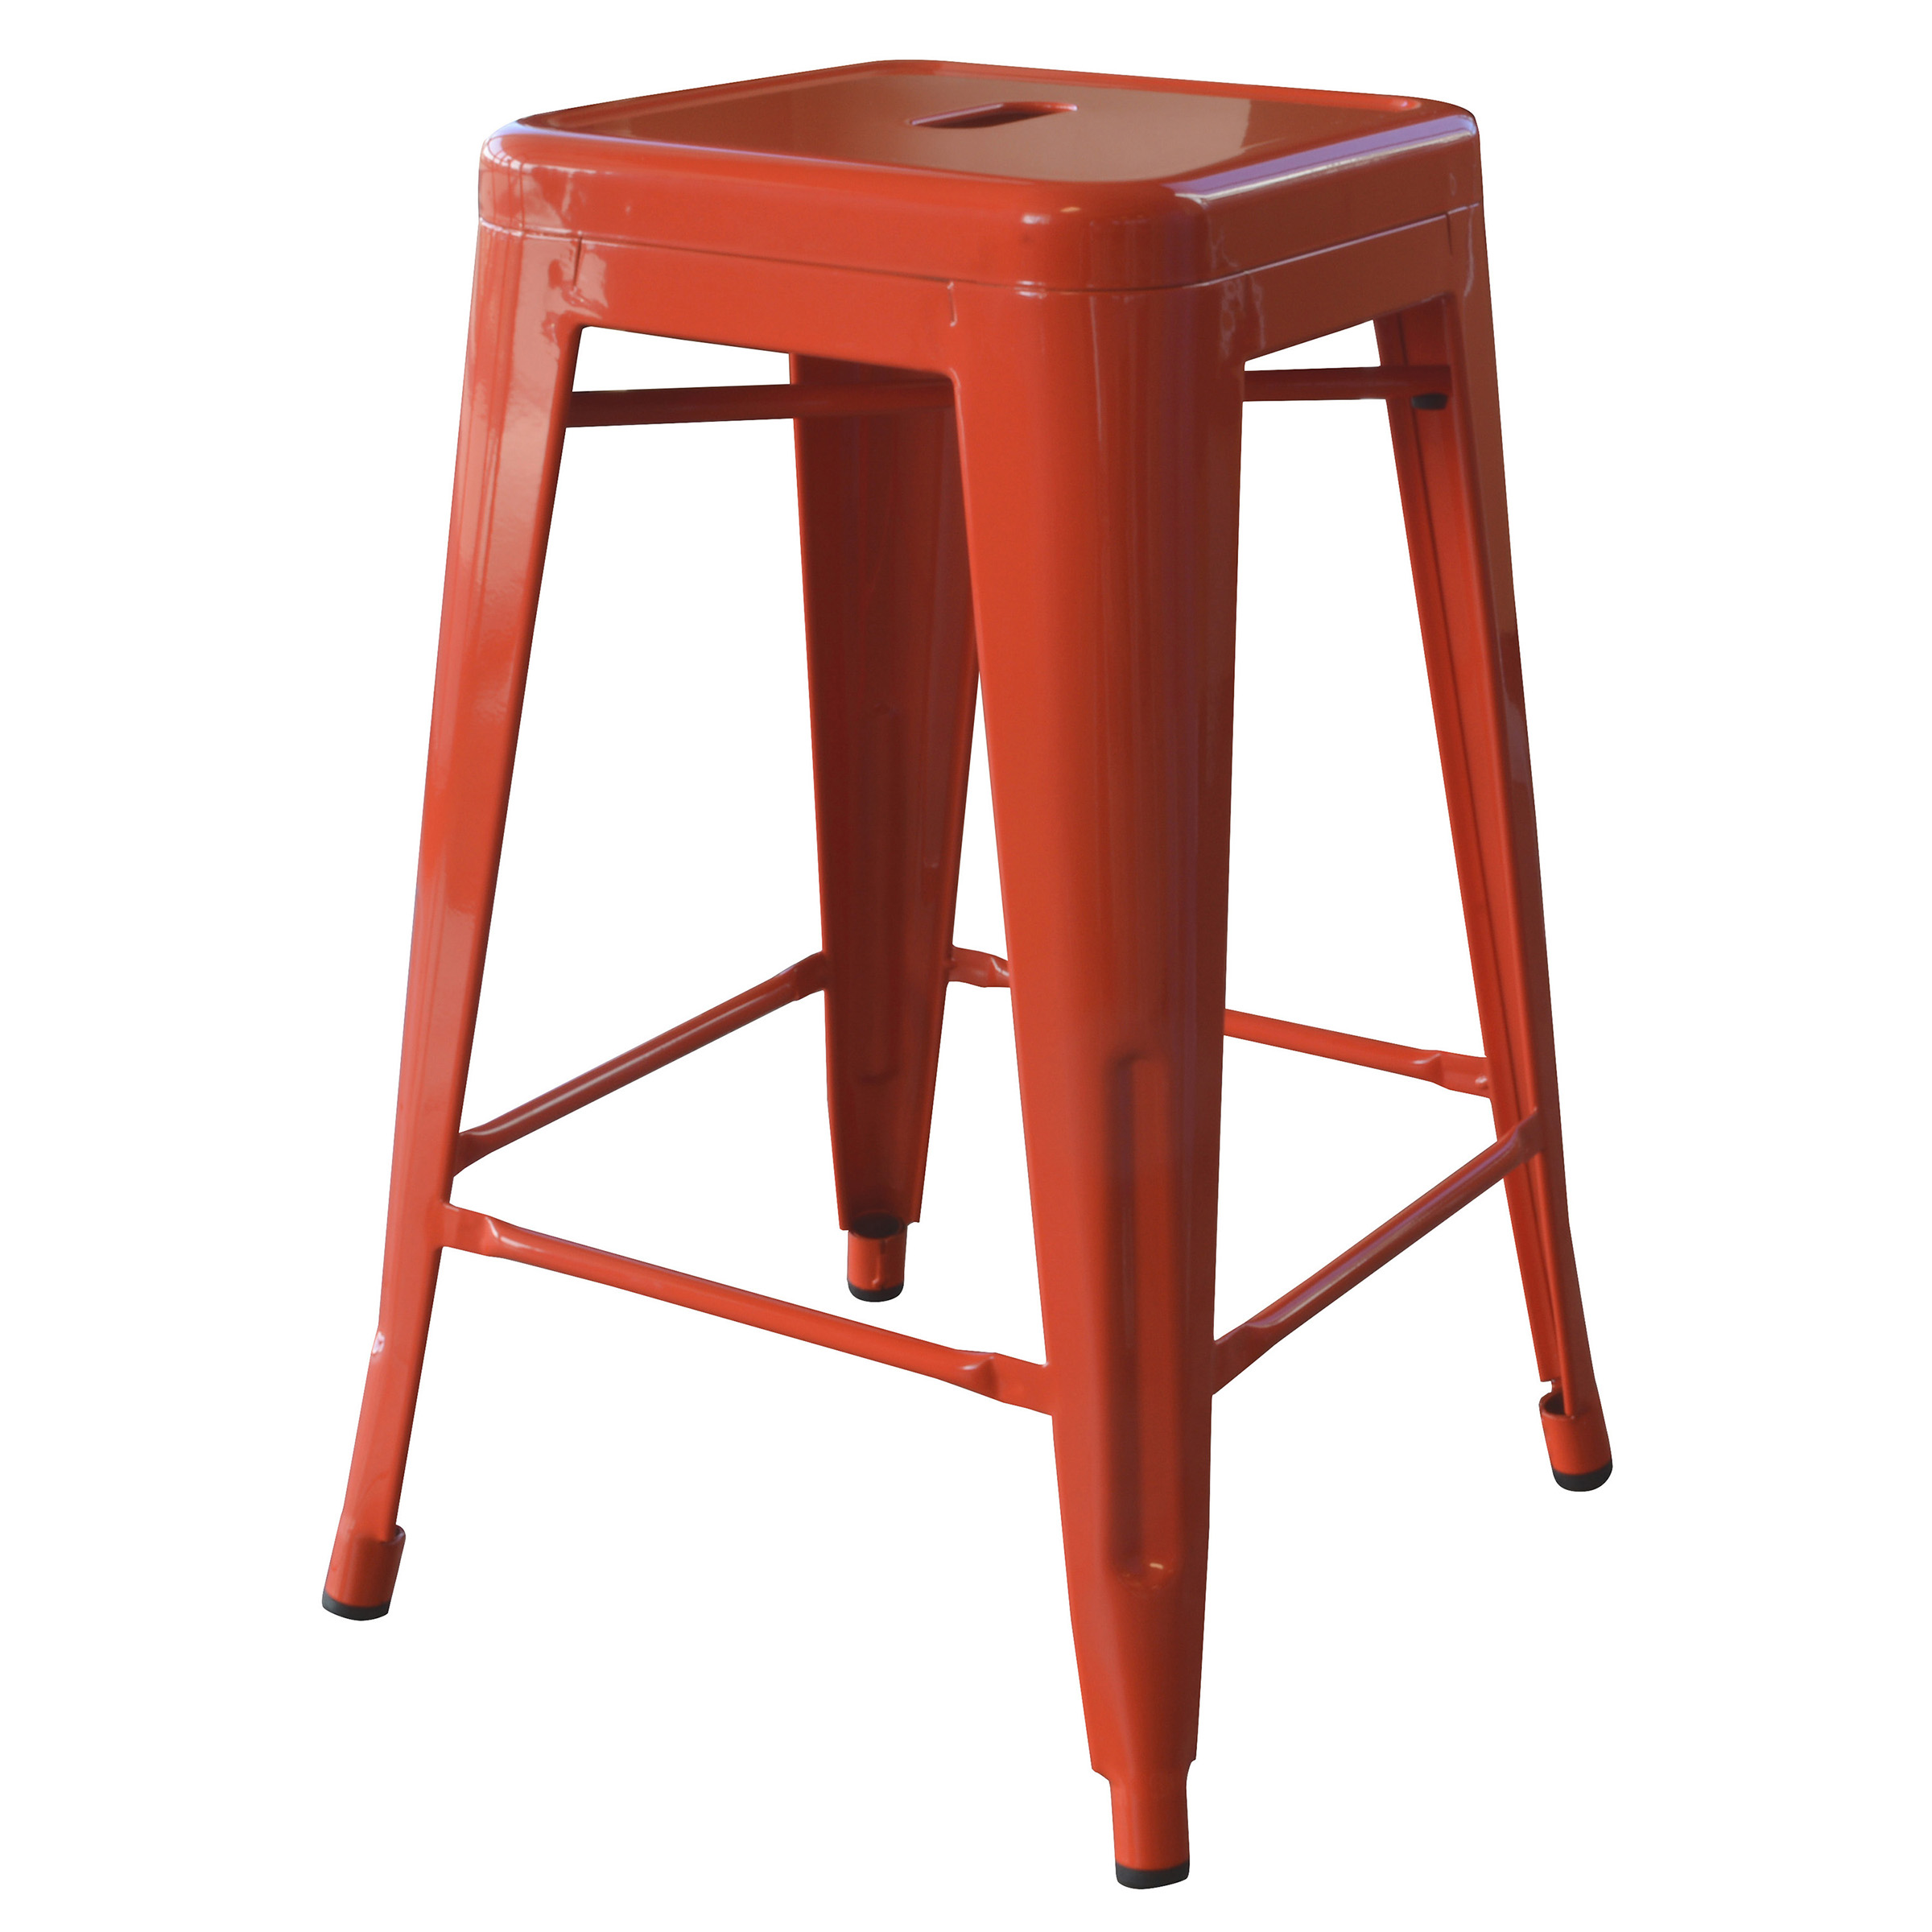 Amerihome Loft Orange 24 Inch Metal Bar Stool Walmartcom